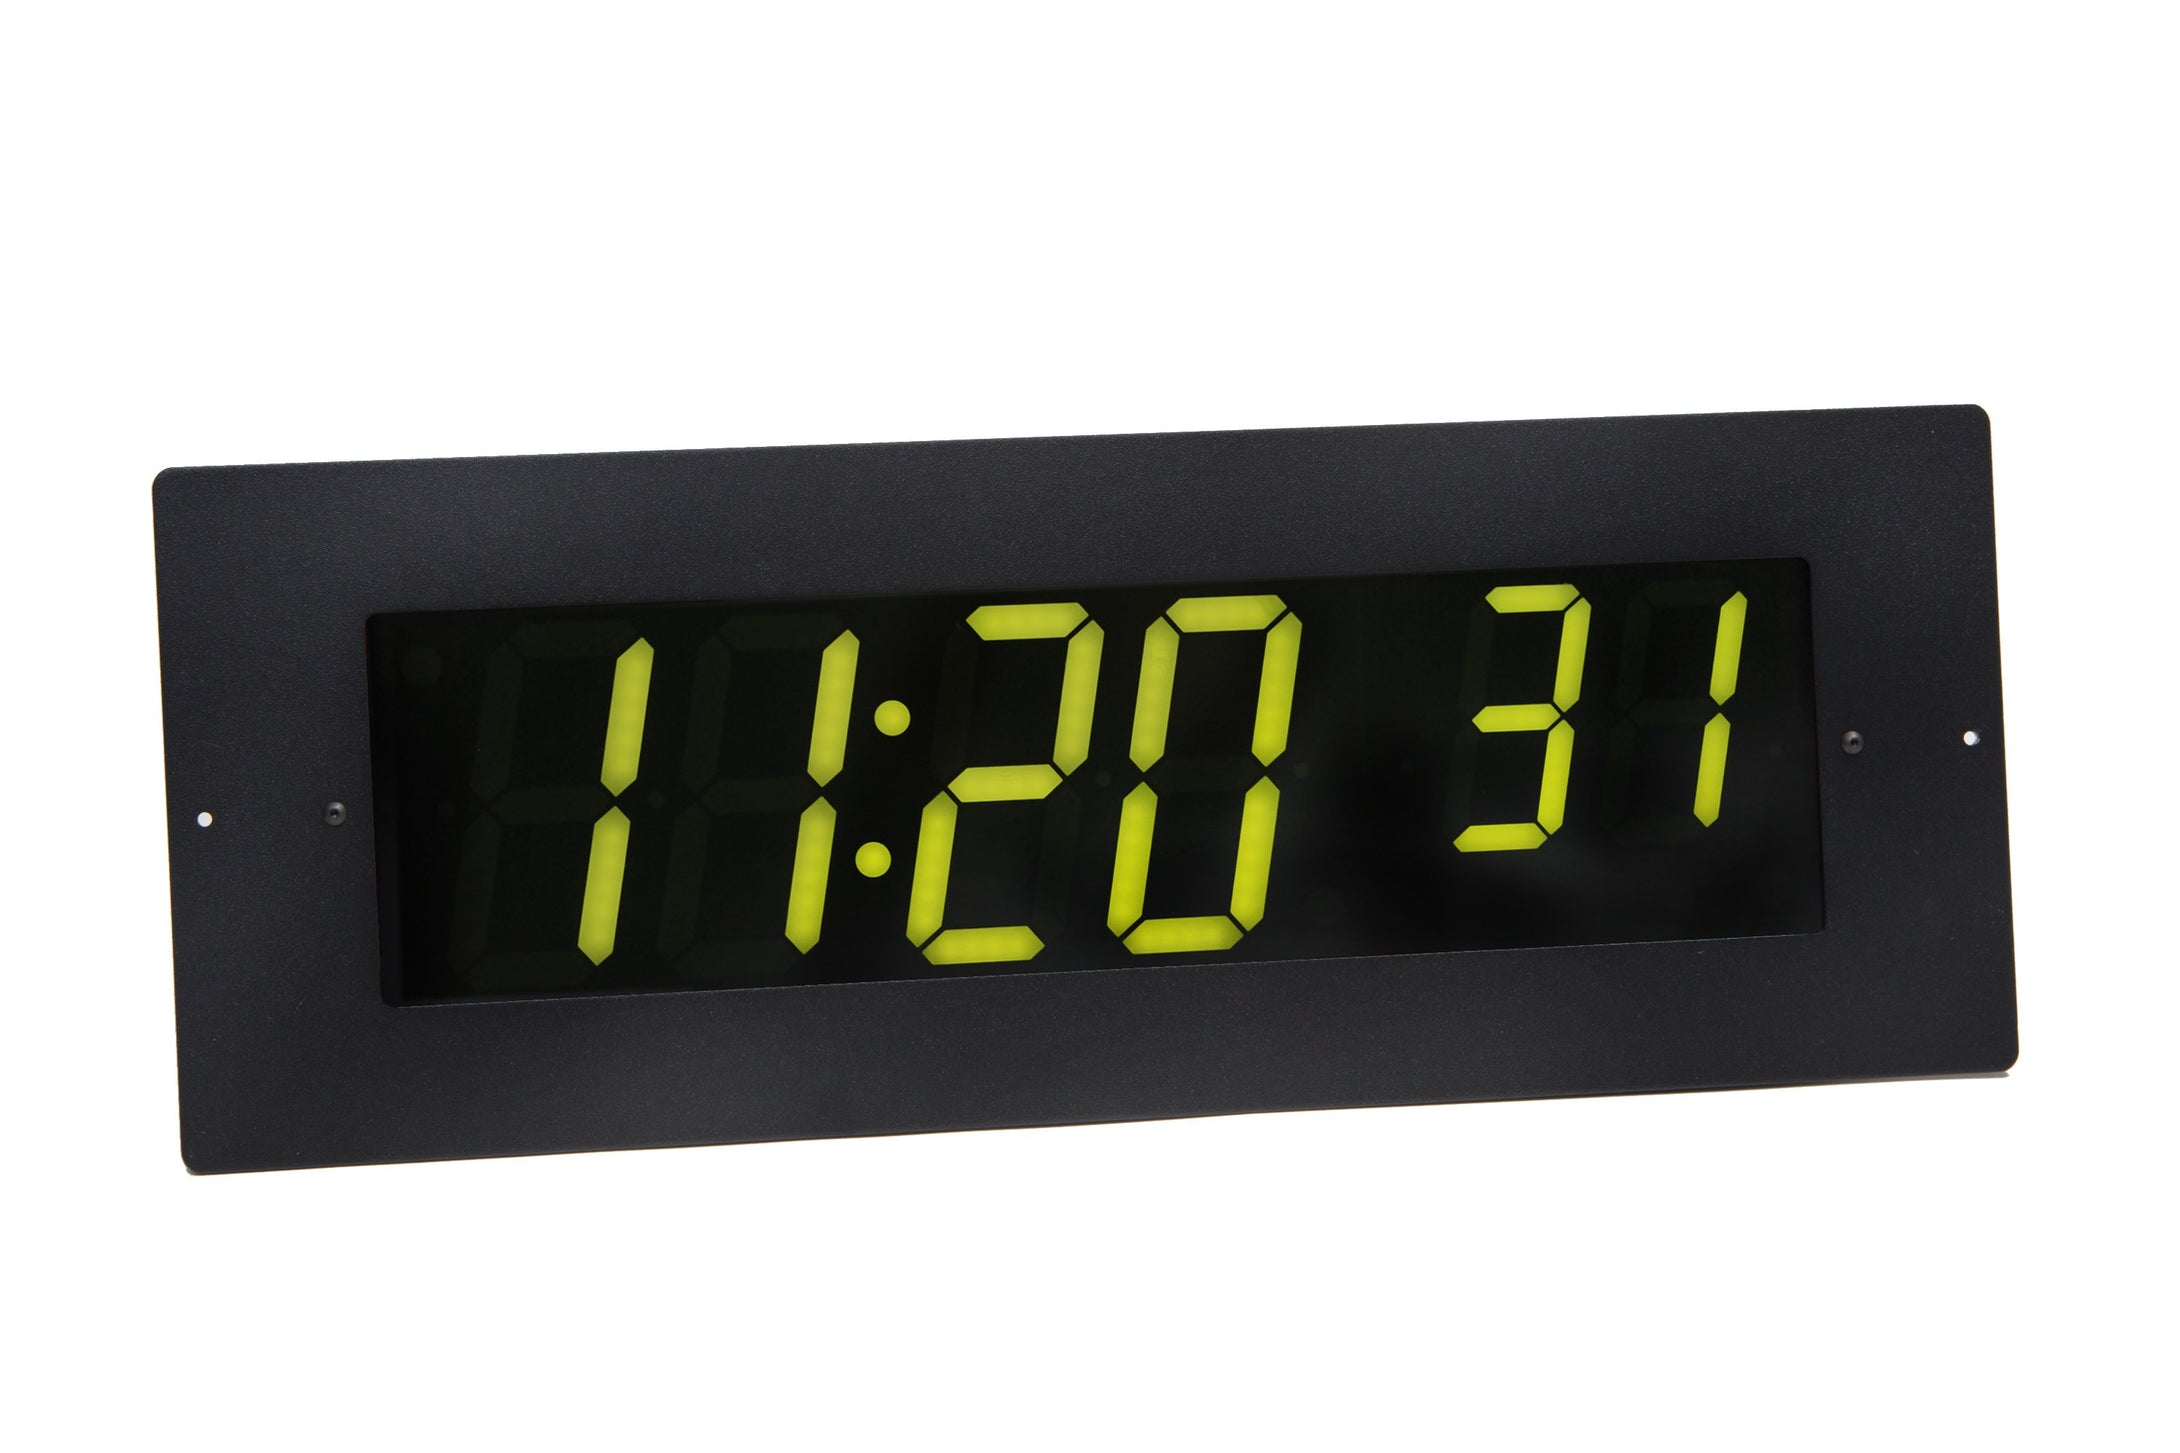 6 Digit PoE Clock, Green LED, Black Aluminum Flush Mount Faceplate